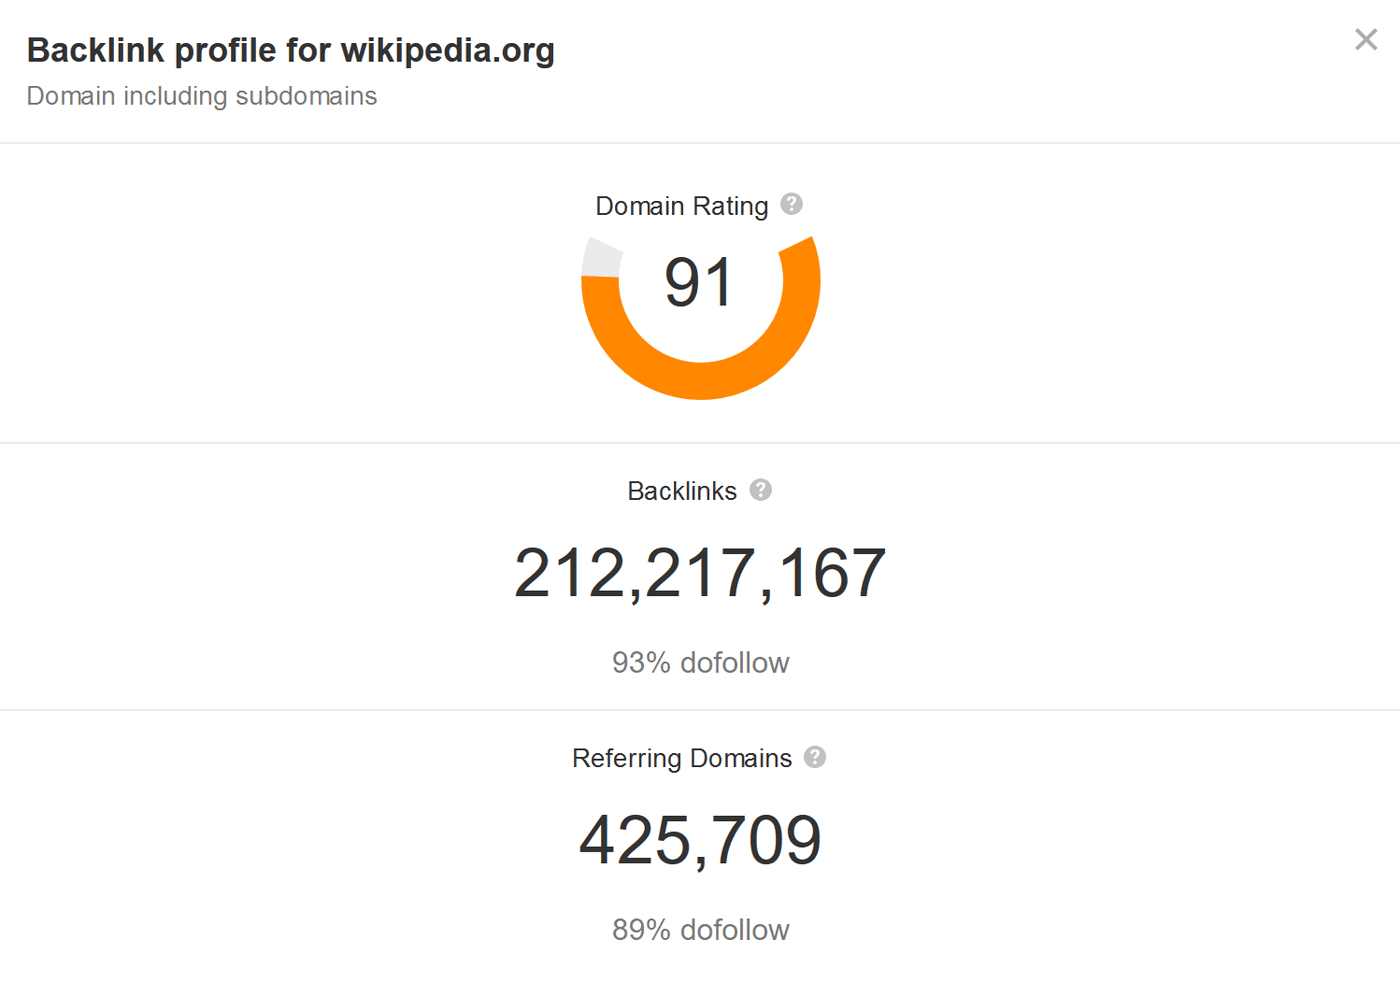 Wikipedia receives free referral traffic from over 425,000 websites that link to it